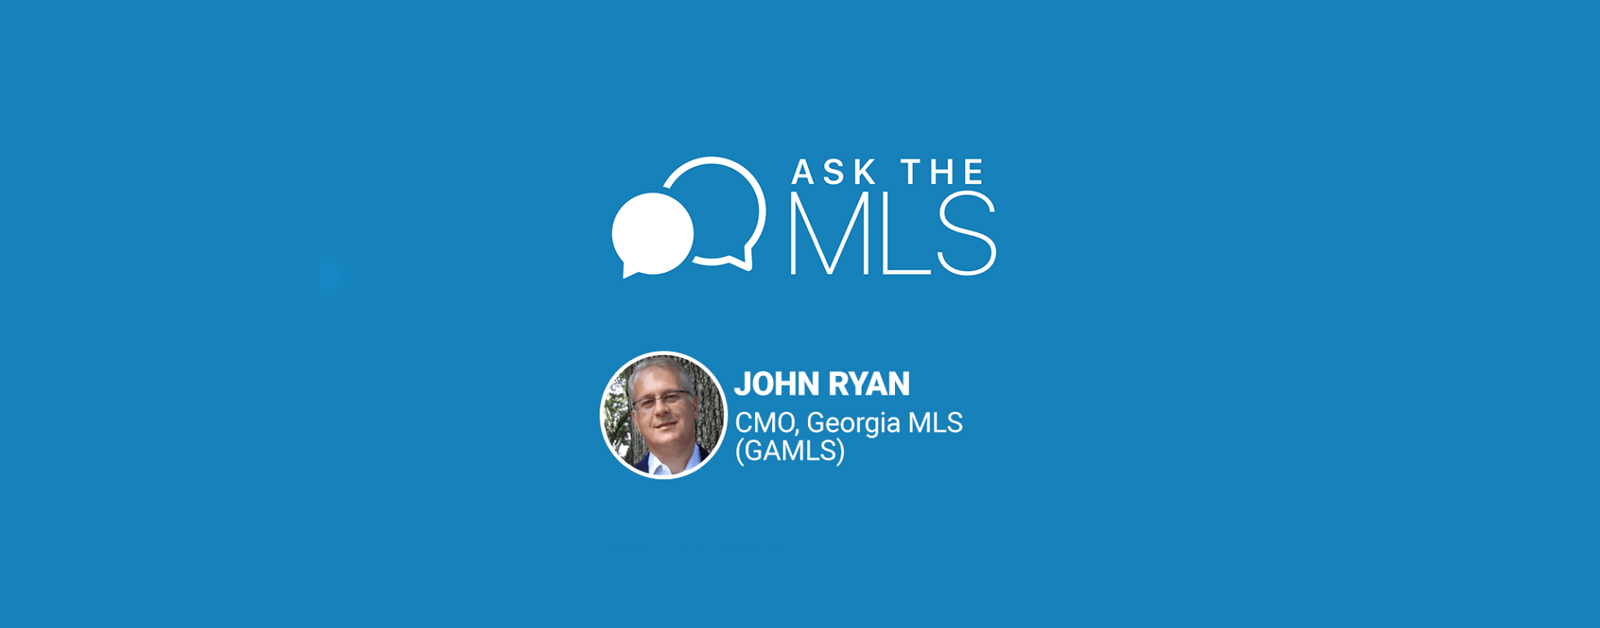 Ask the MLS John Ryan